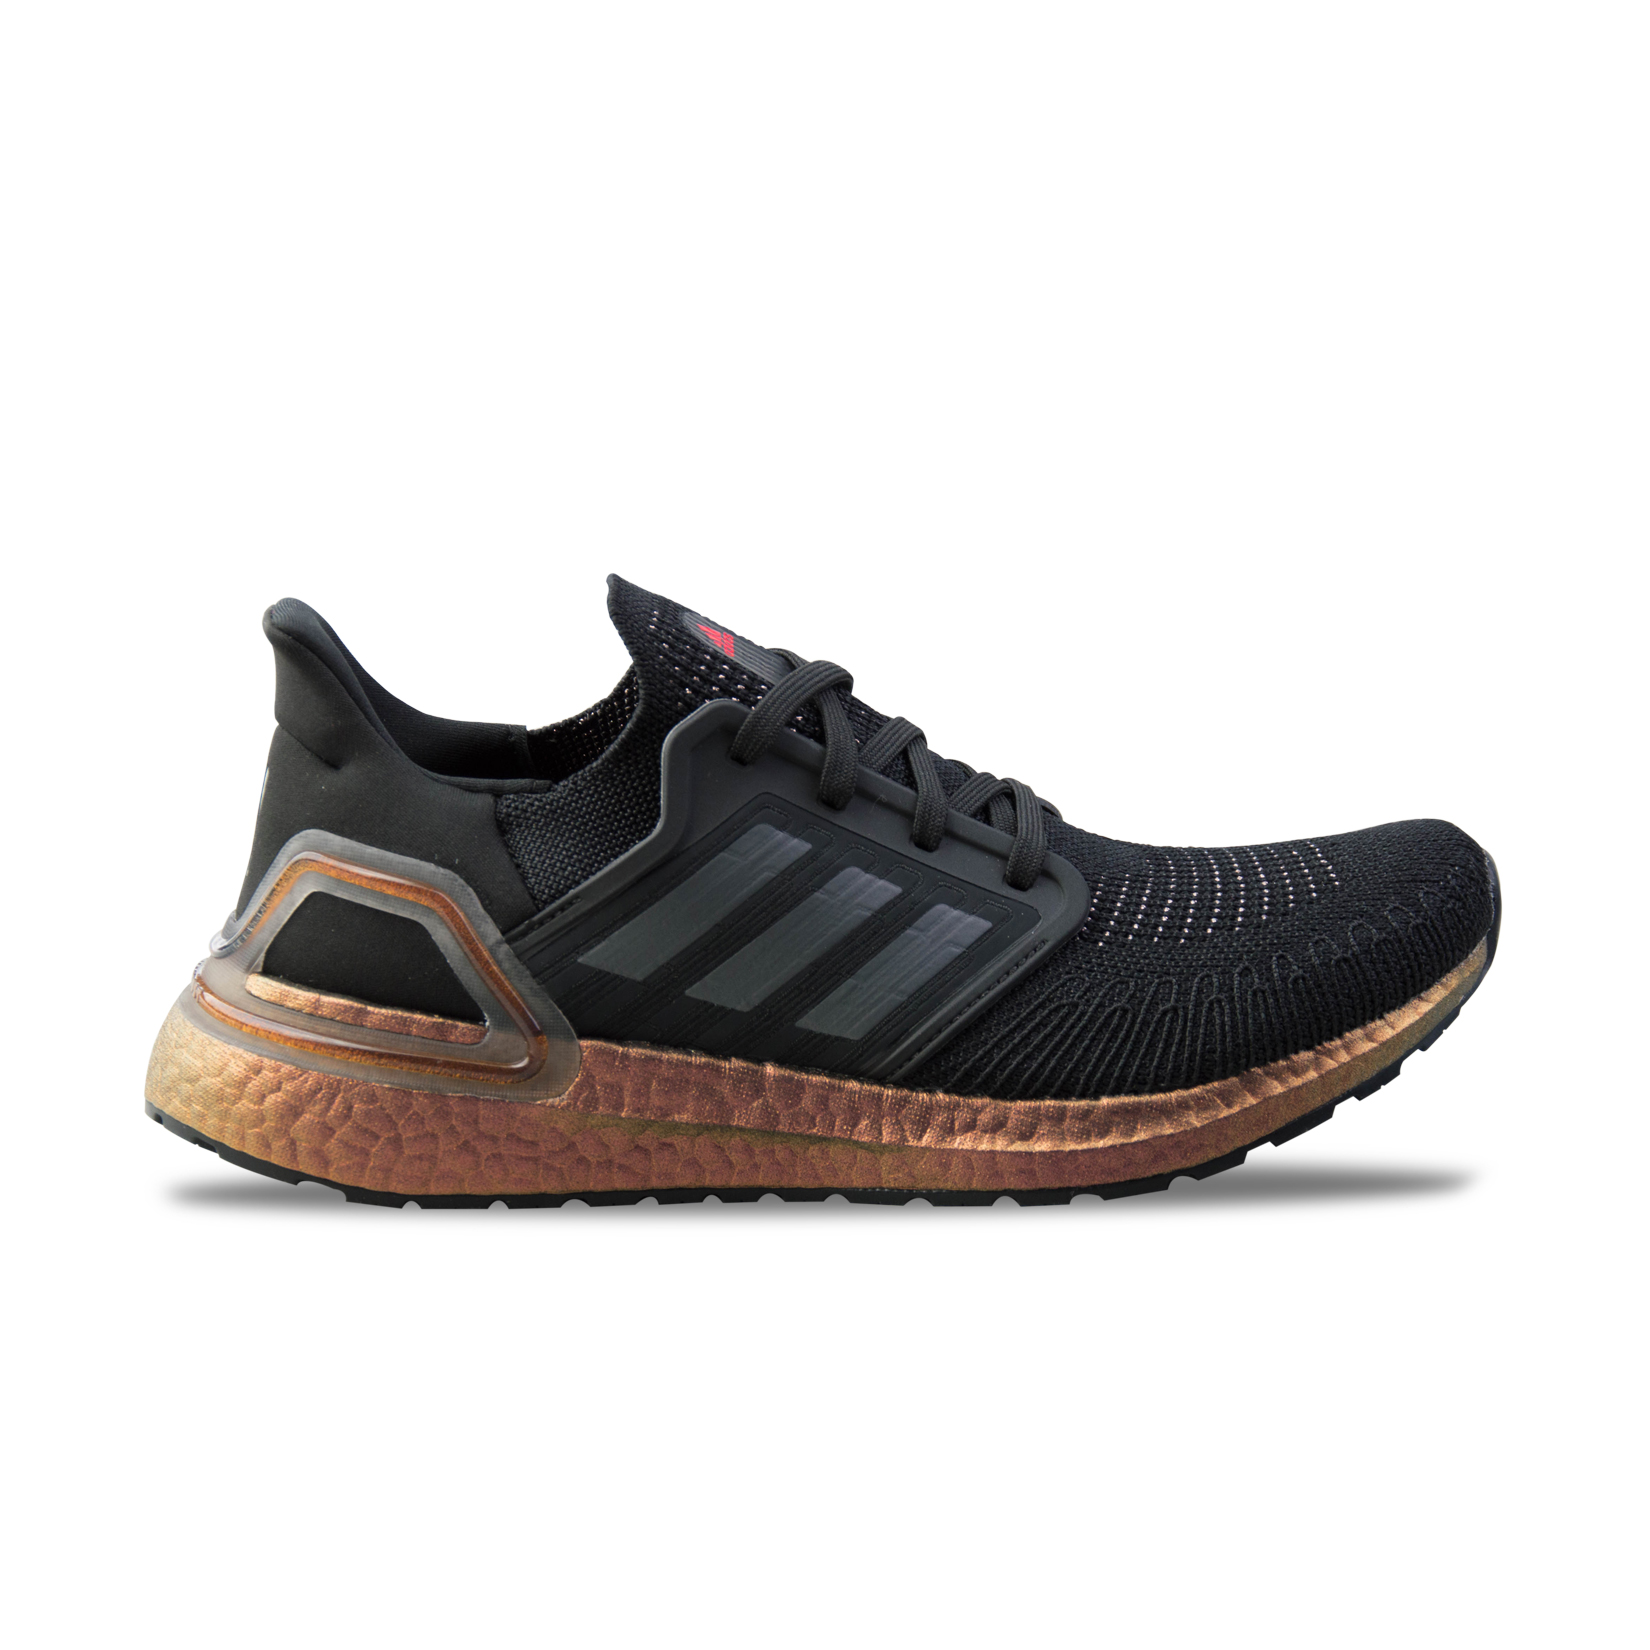 Adidas Ultraboost 20 Black - Iridescent